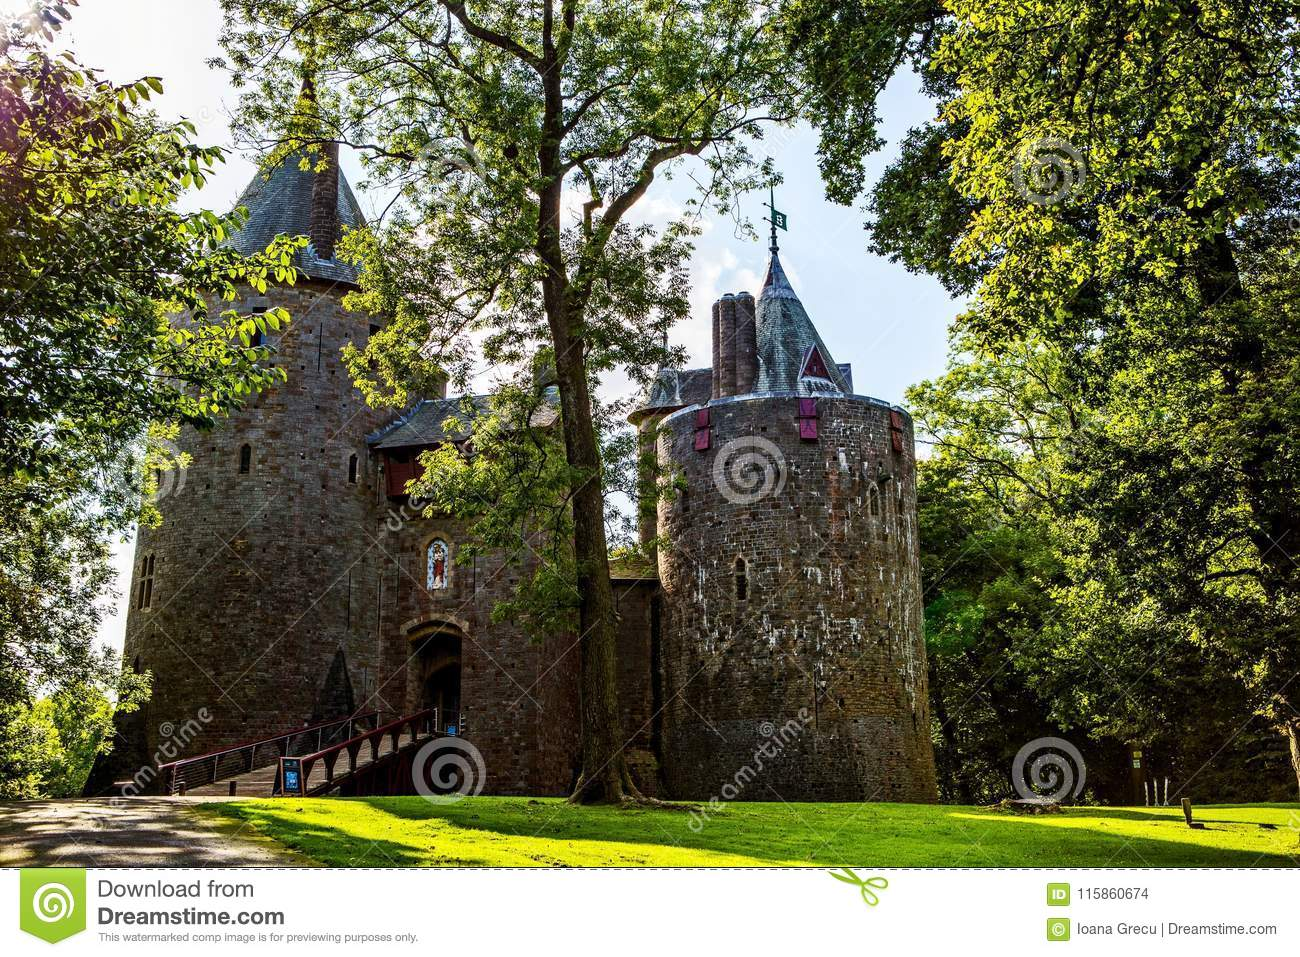 Castell Coch, Red Castle, Tongwynlais, South Wales